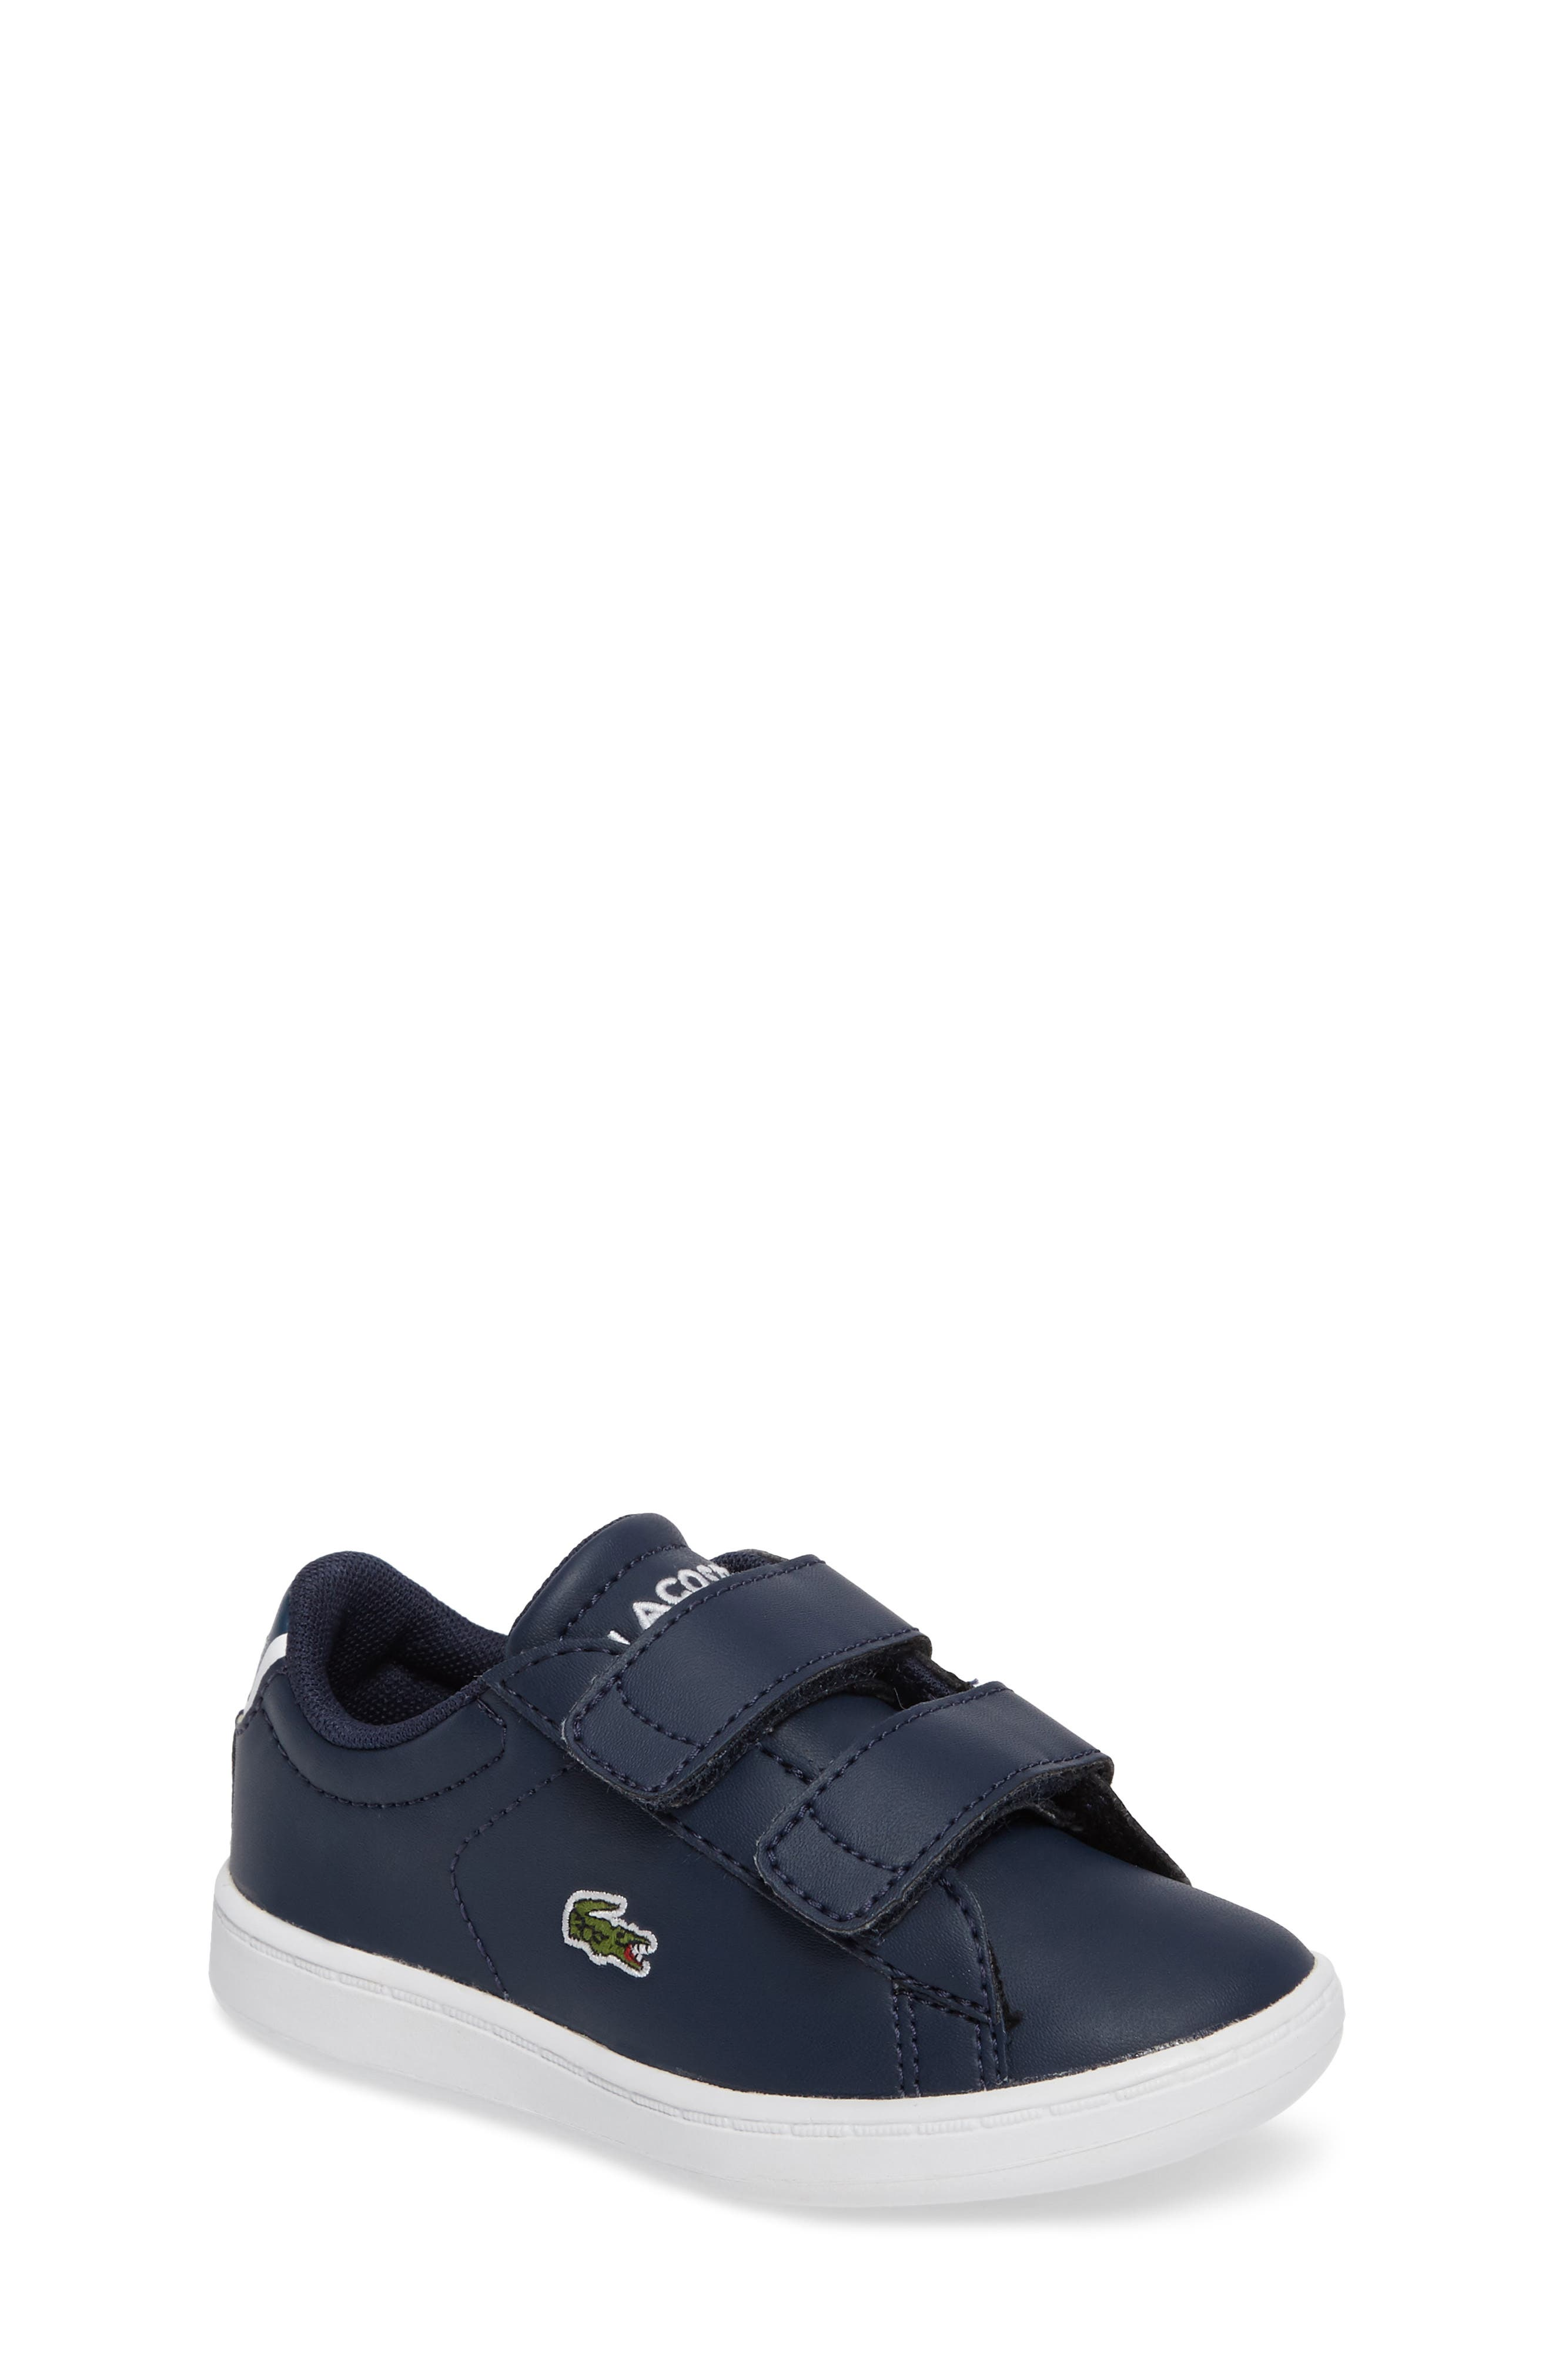 Carnaby Evo Sneaker,                             Main thumbnail 1, color,                             428